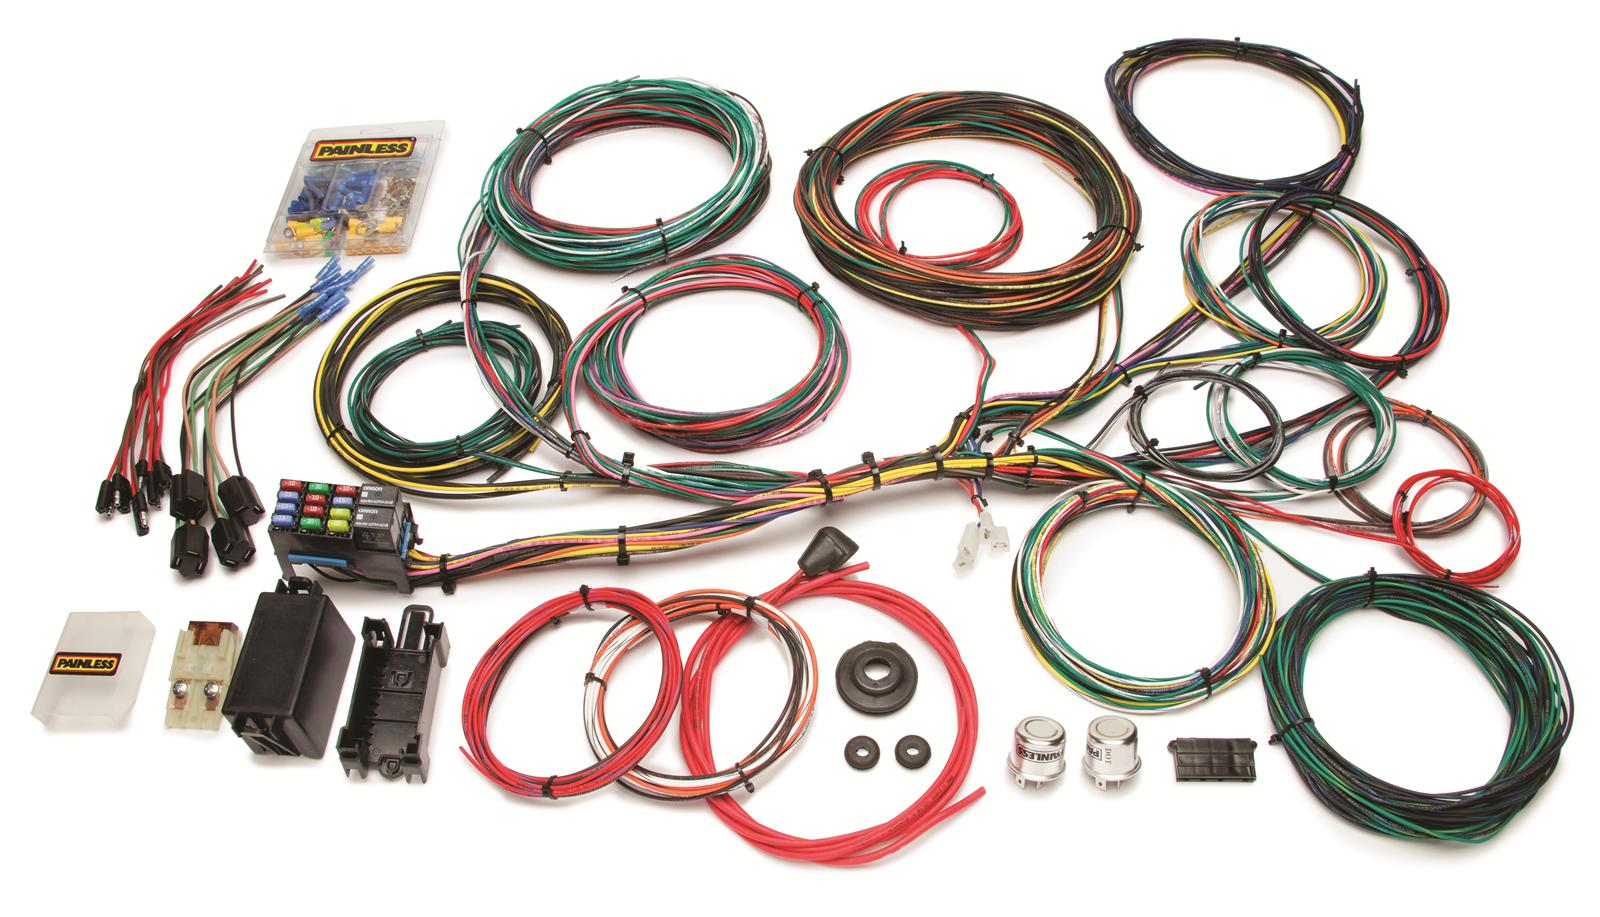 Painless Performance 21-Circuit Ford Color Coded Universal Harnesses 10123  - Free Shipping on Orders Over $49 at Summit Racing